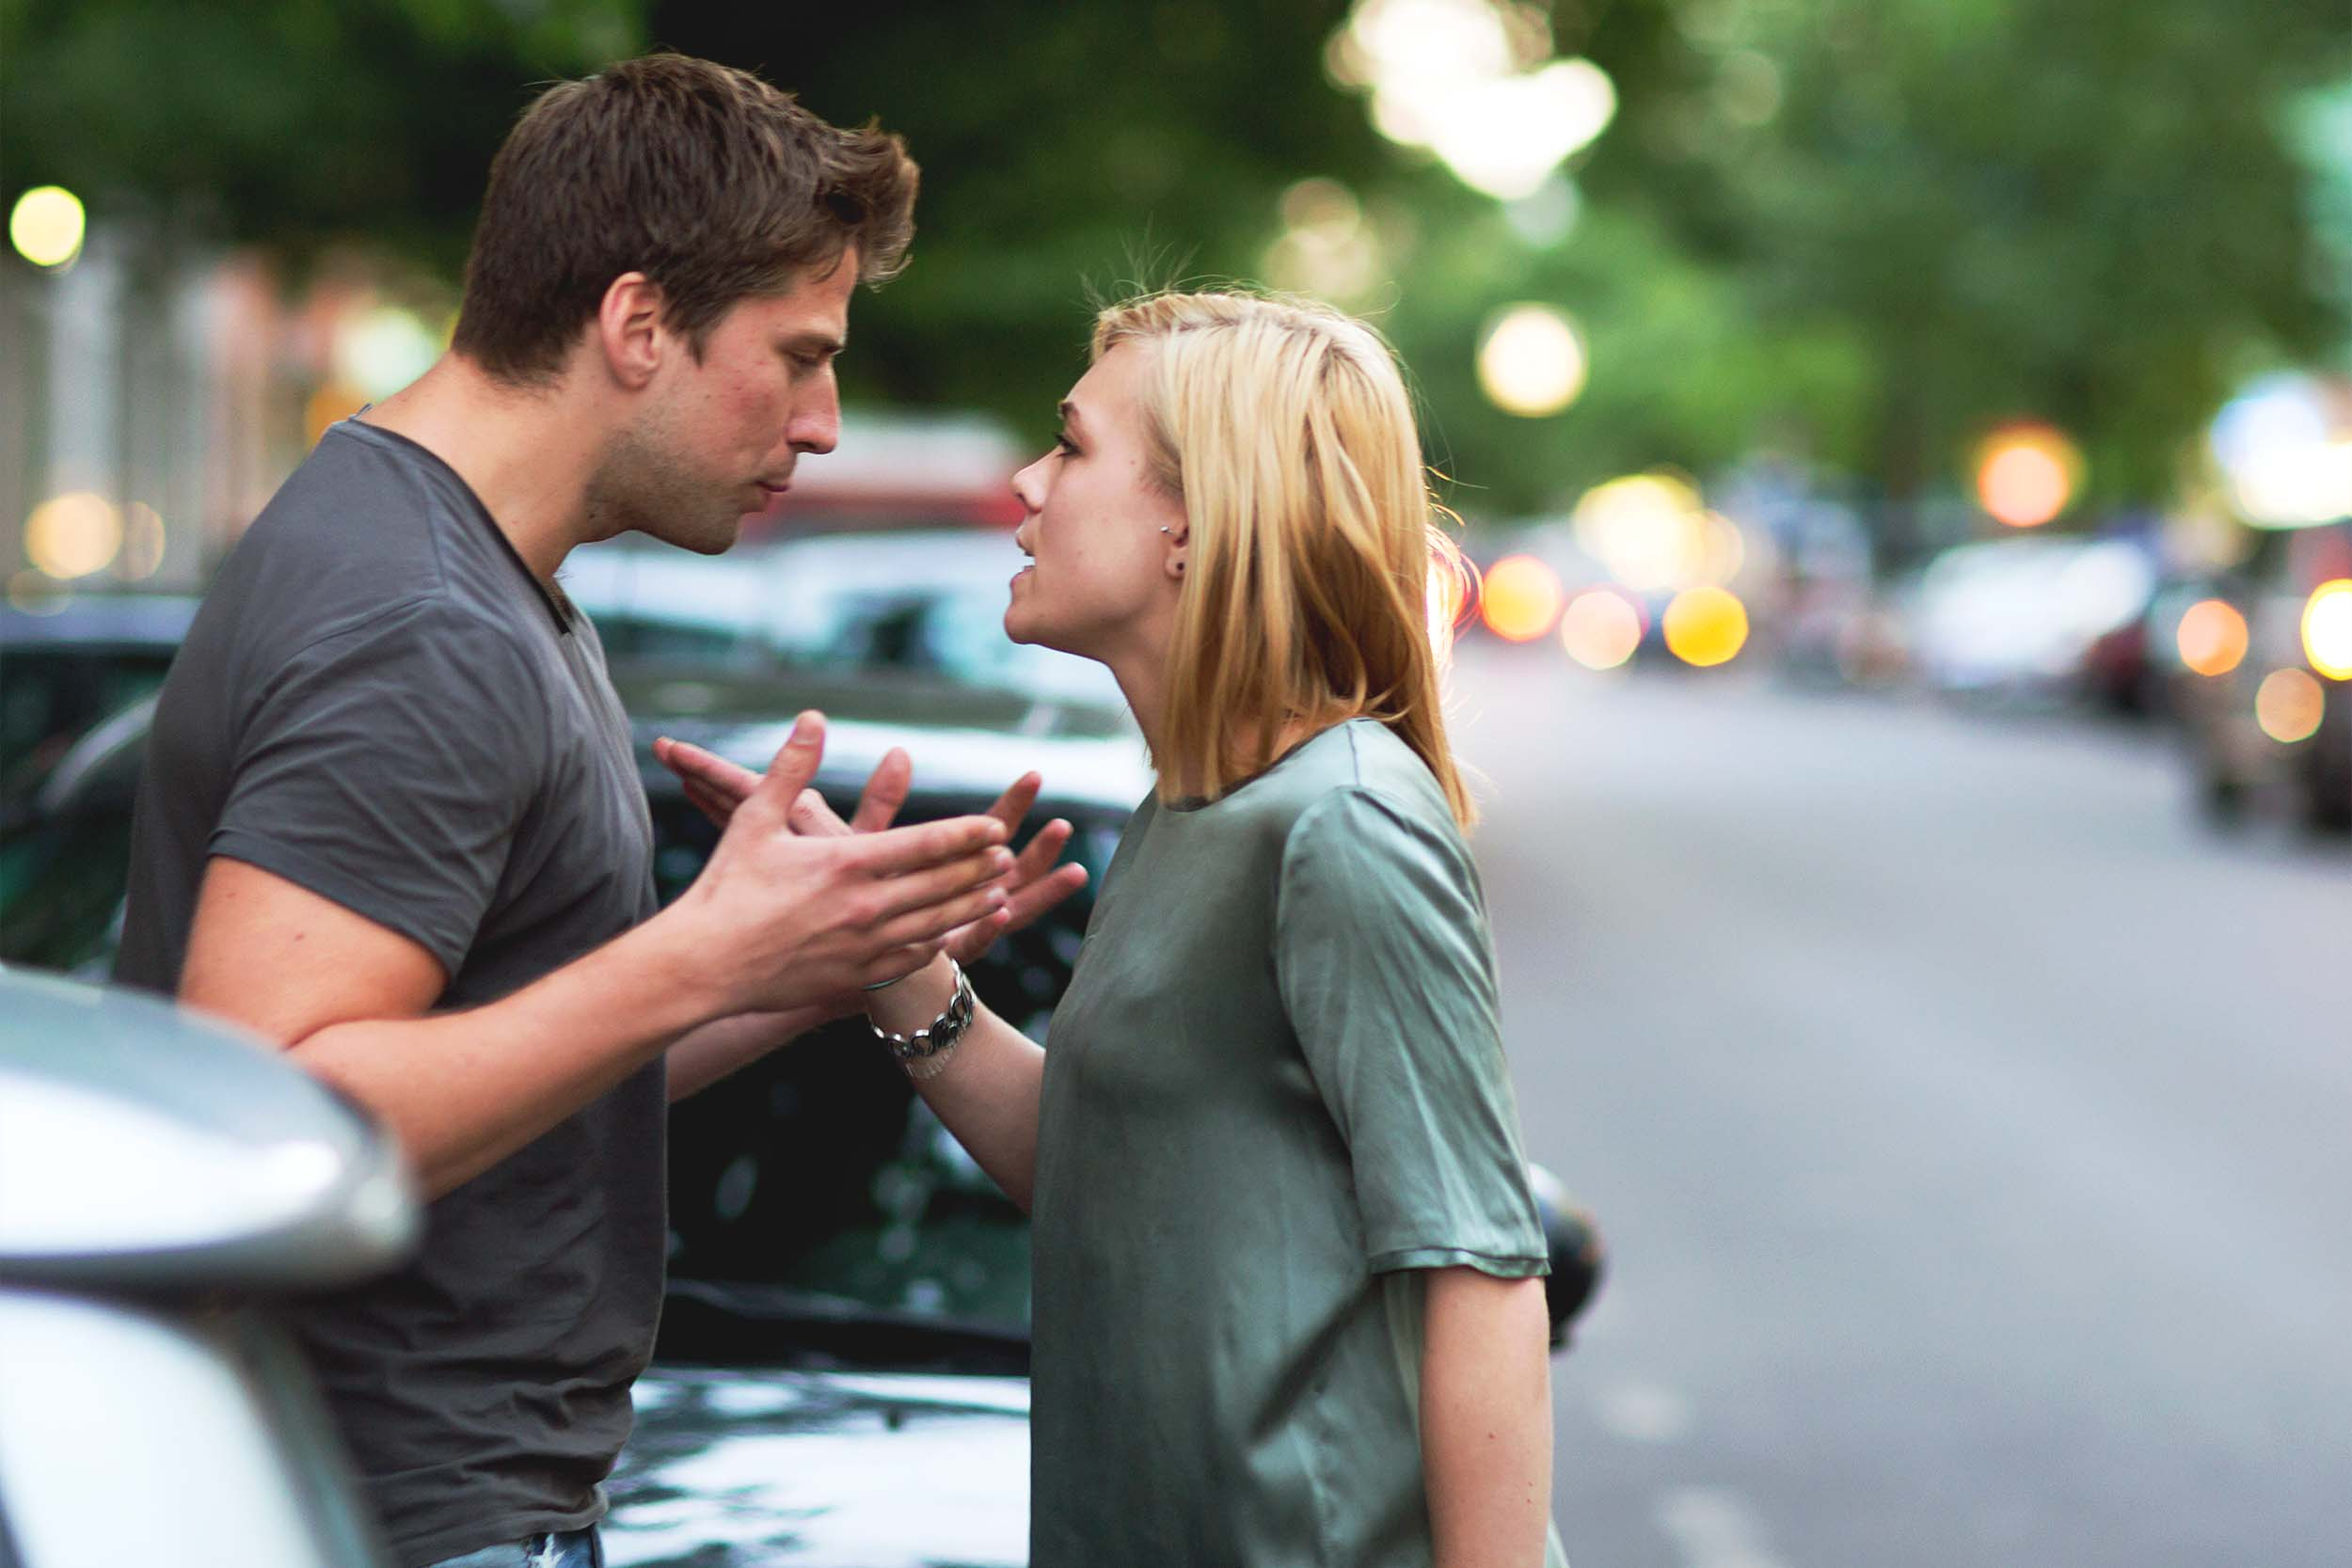 the-dark-side-of-anger:-what-every-couple-should-know